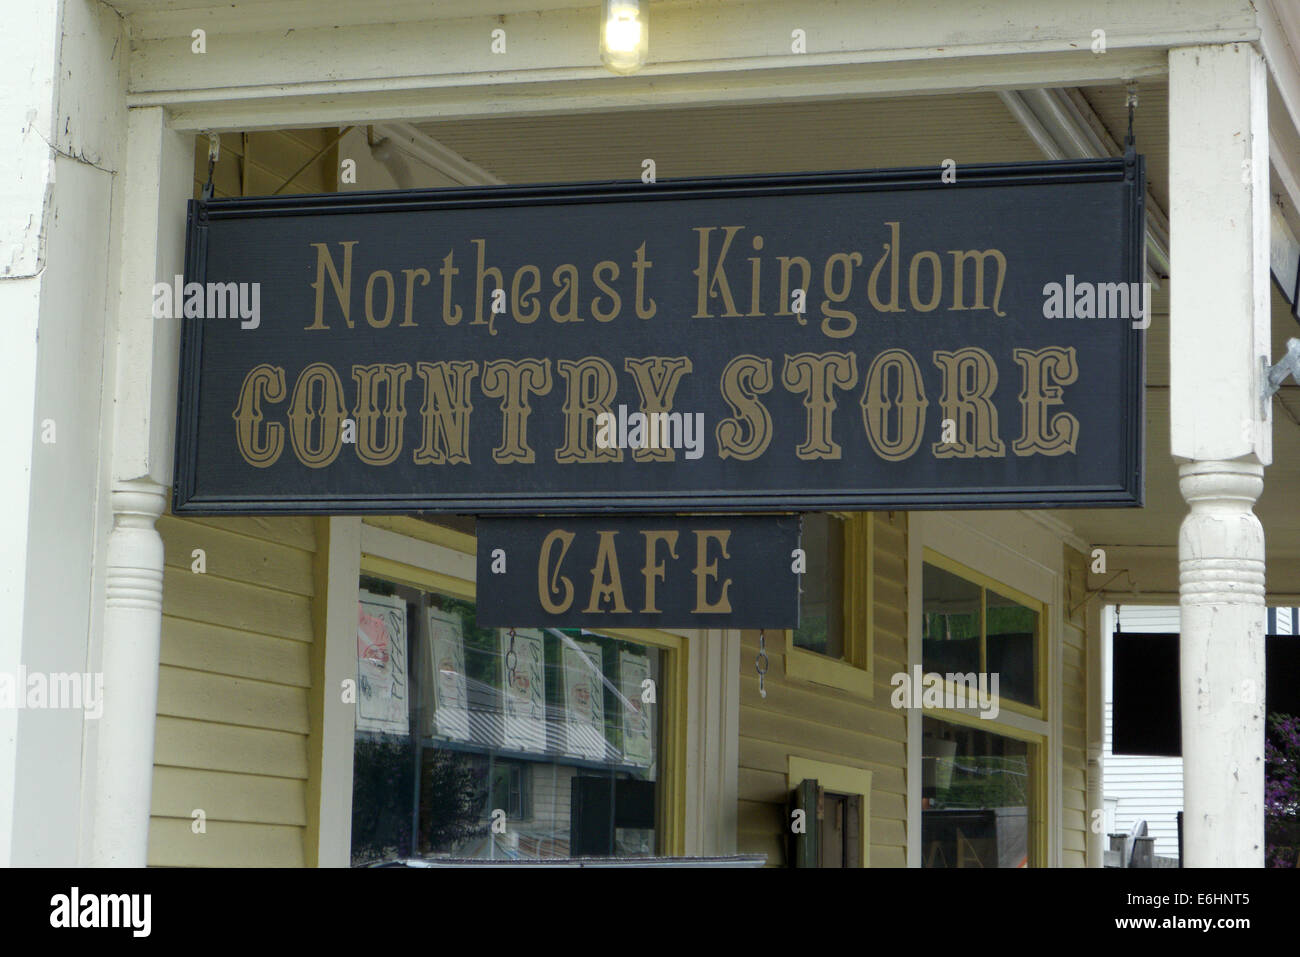 Northeast Kingdom Country Store In East Burke Vermont Usa Stock Photo Royalty Free Image